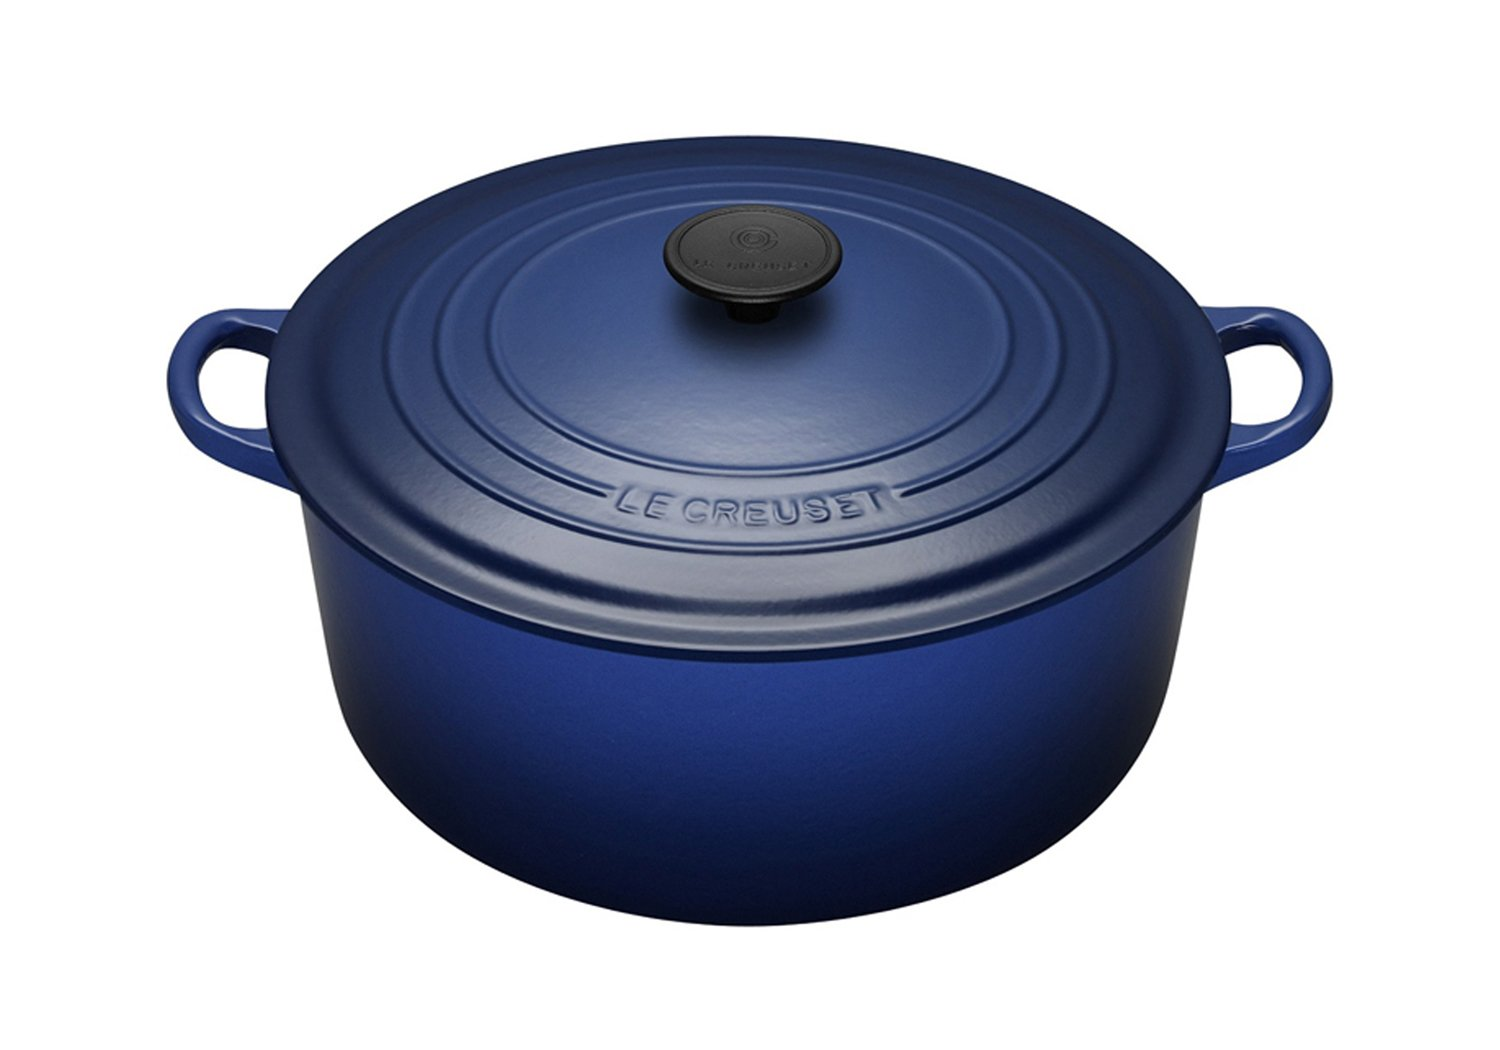 Le Creuset Enameled Cast-Iron 3-1/2-Quart Round French Oven, Cobalt Blue